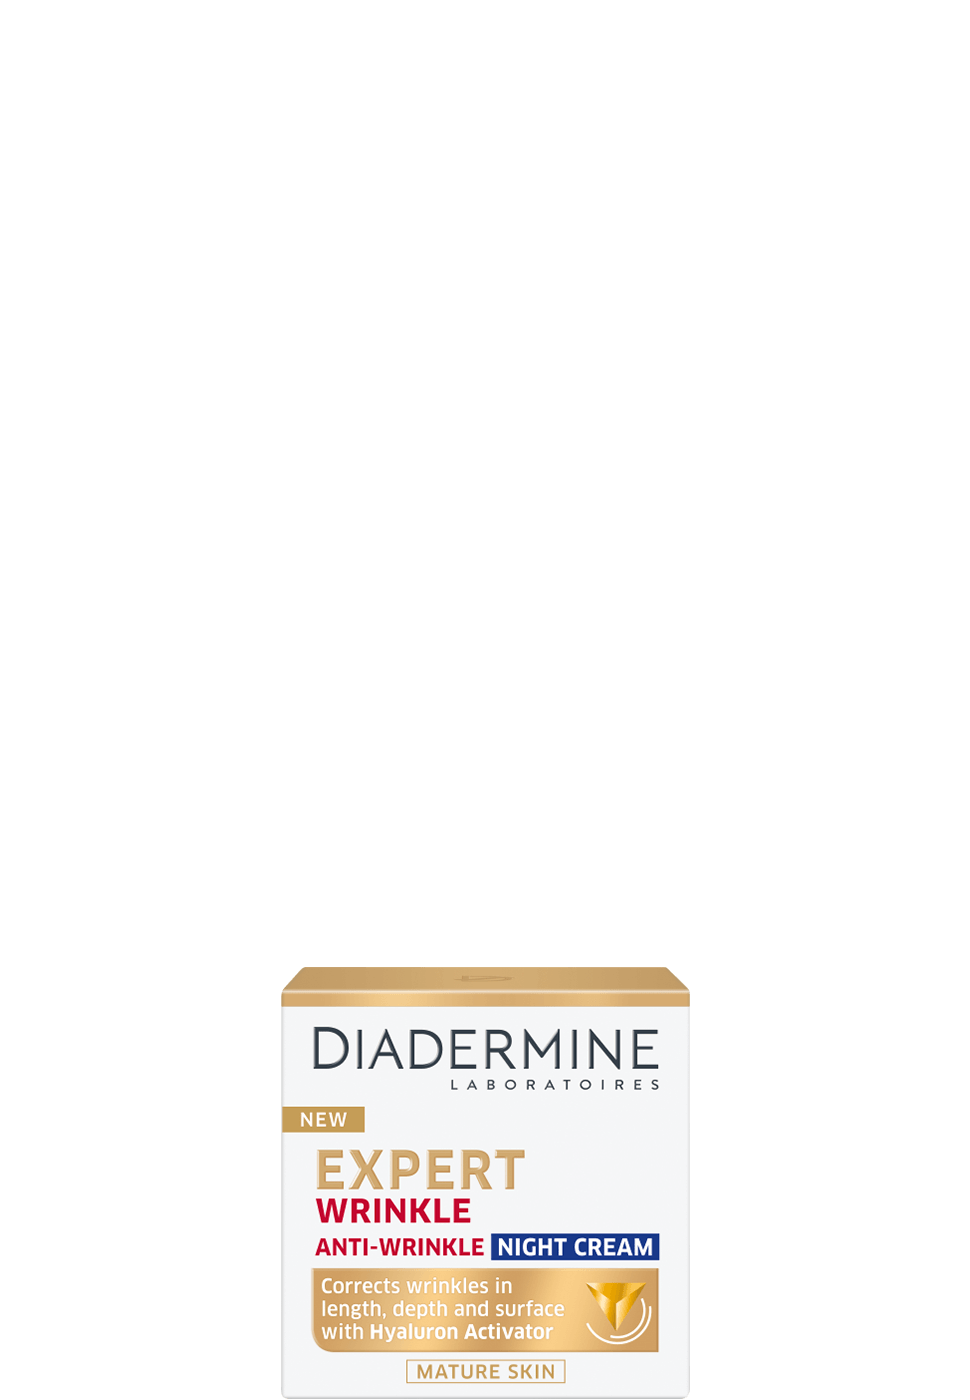 diadermine_com_expert_wrinkle_anti_wrinkle_night_cream_970x1400